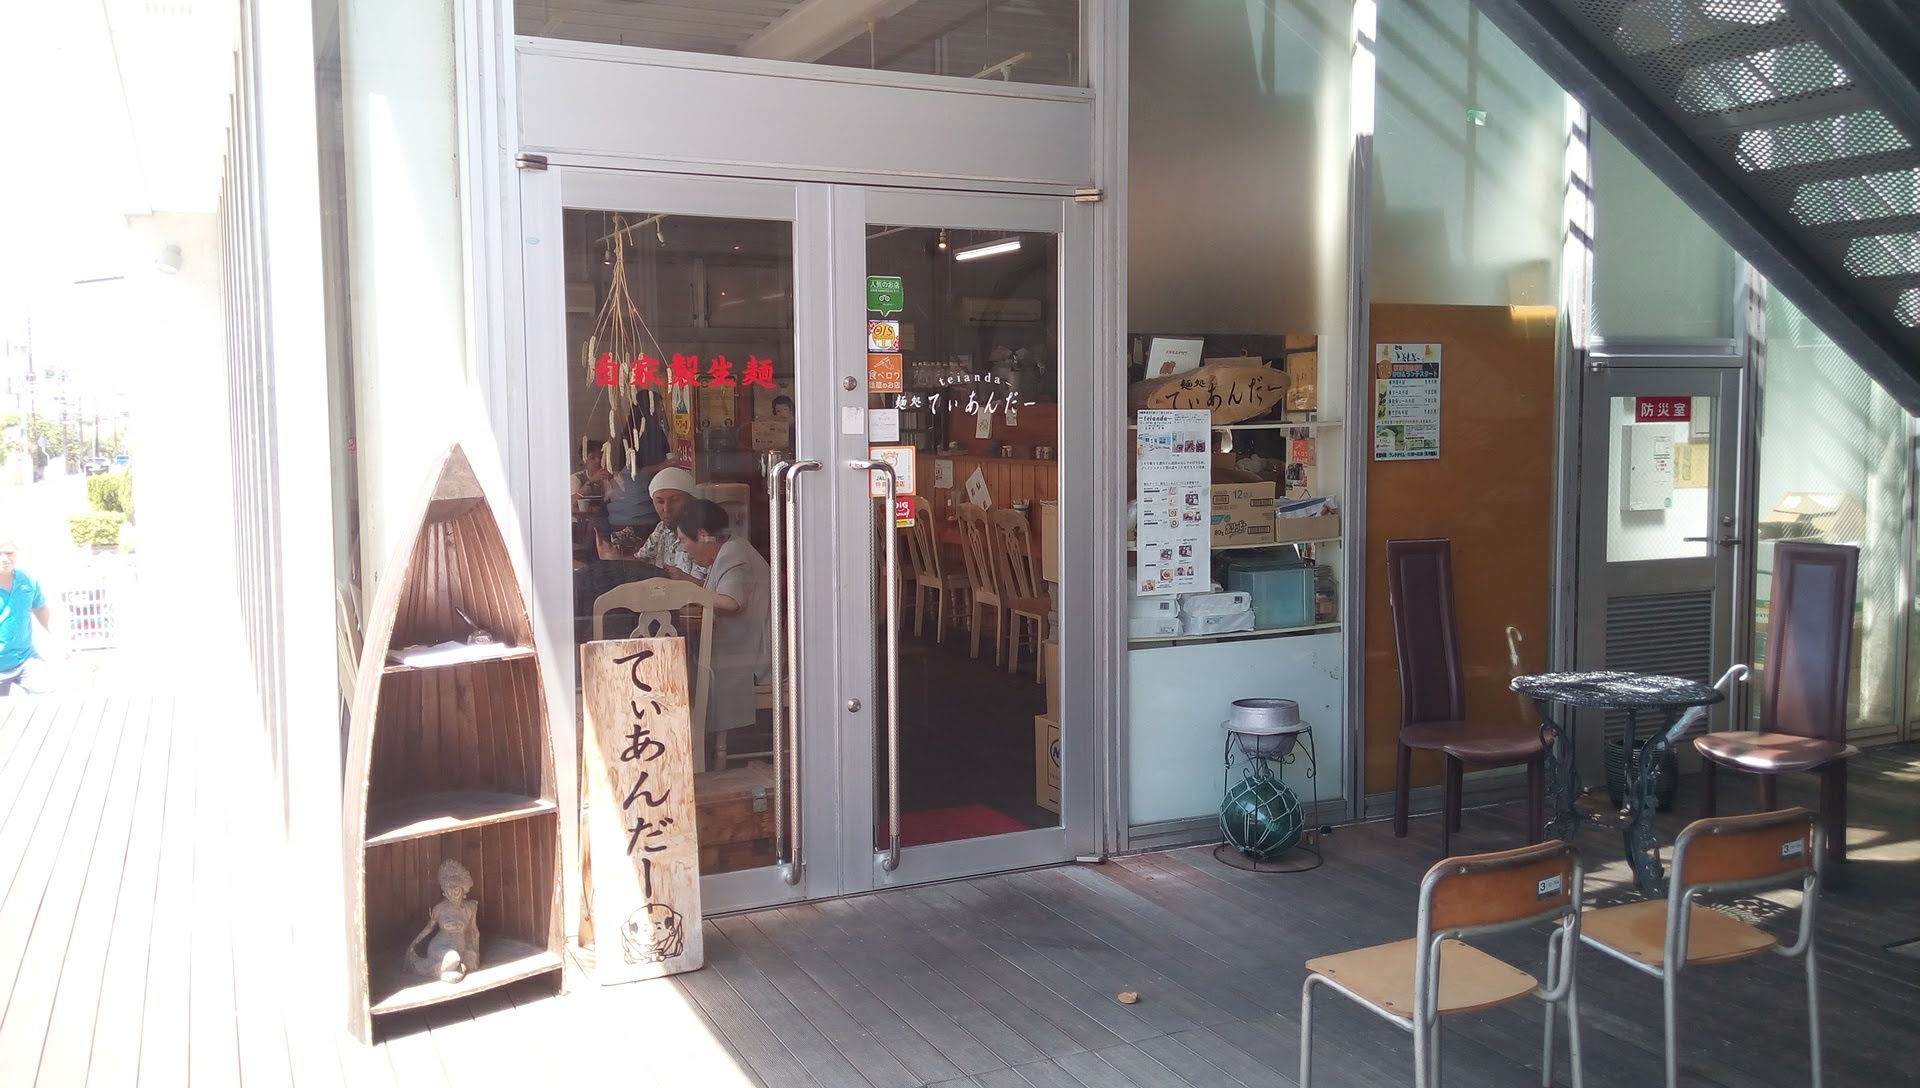 Teianda is Okinawa soba shop in Naha, its homemade handmade raw noodles that took time and is good